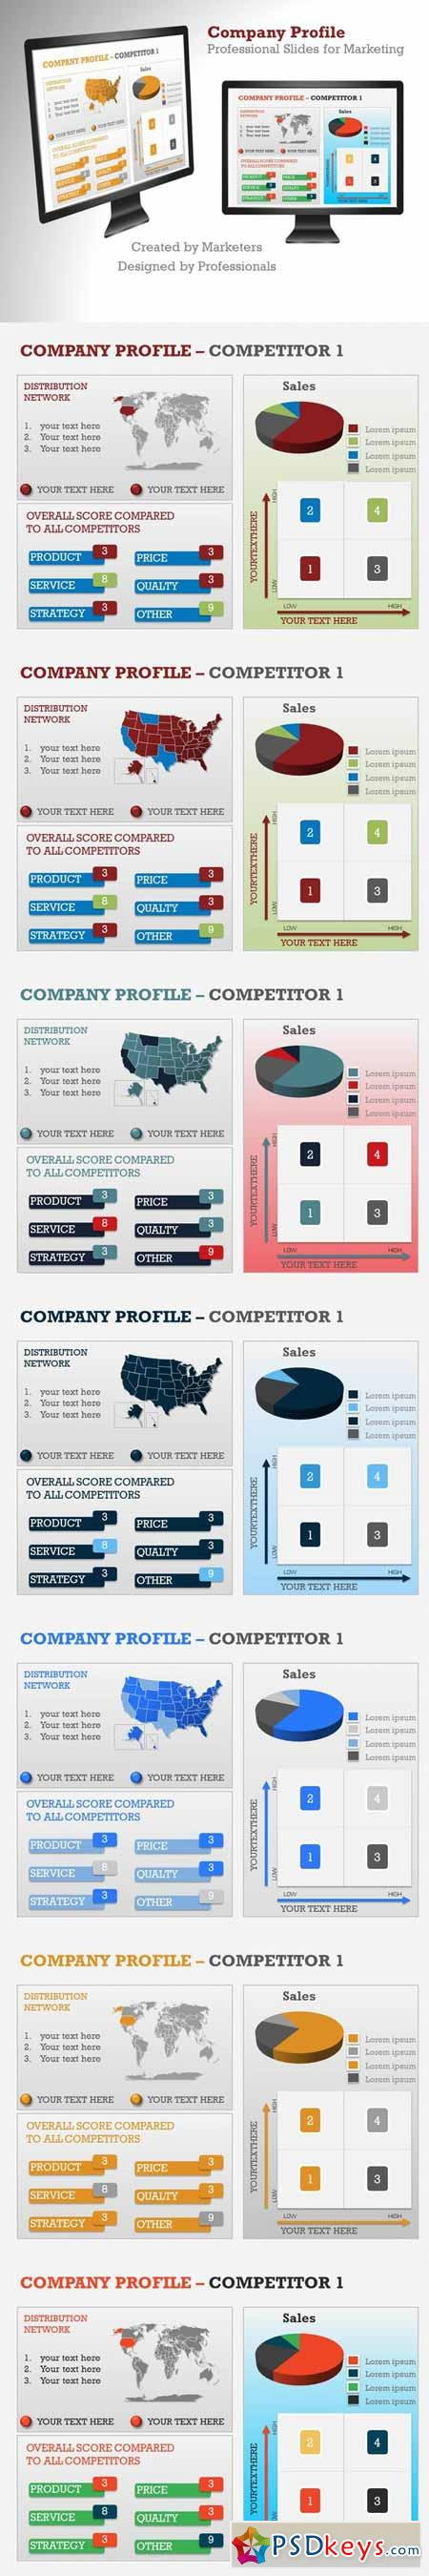 powerpoint templates torrents - company profile powerpoint template 372633 free download